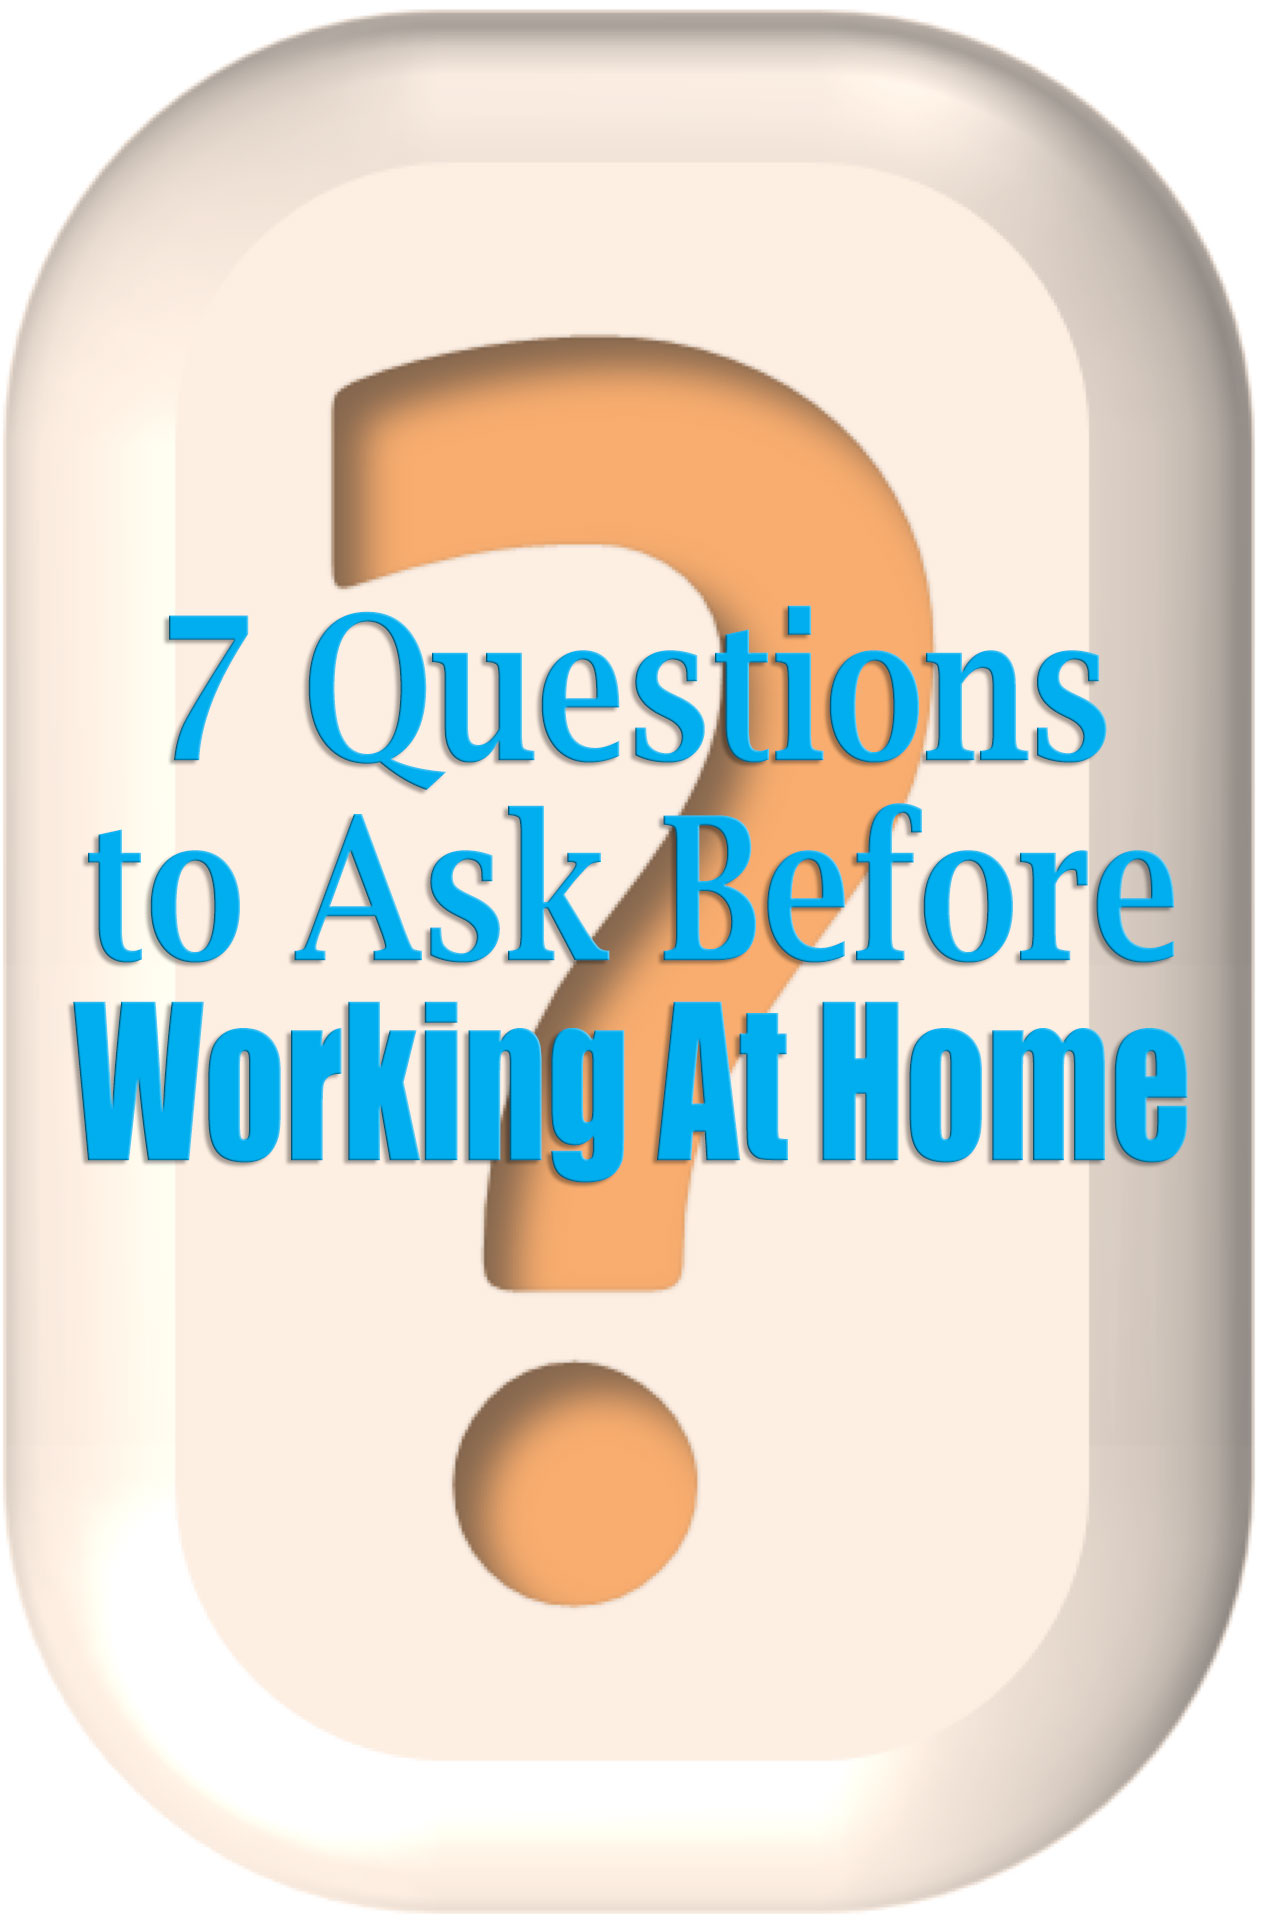 7 Questions to Ask Before Working At Home